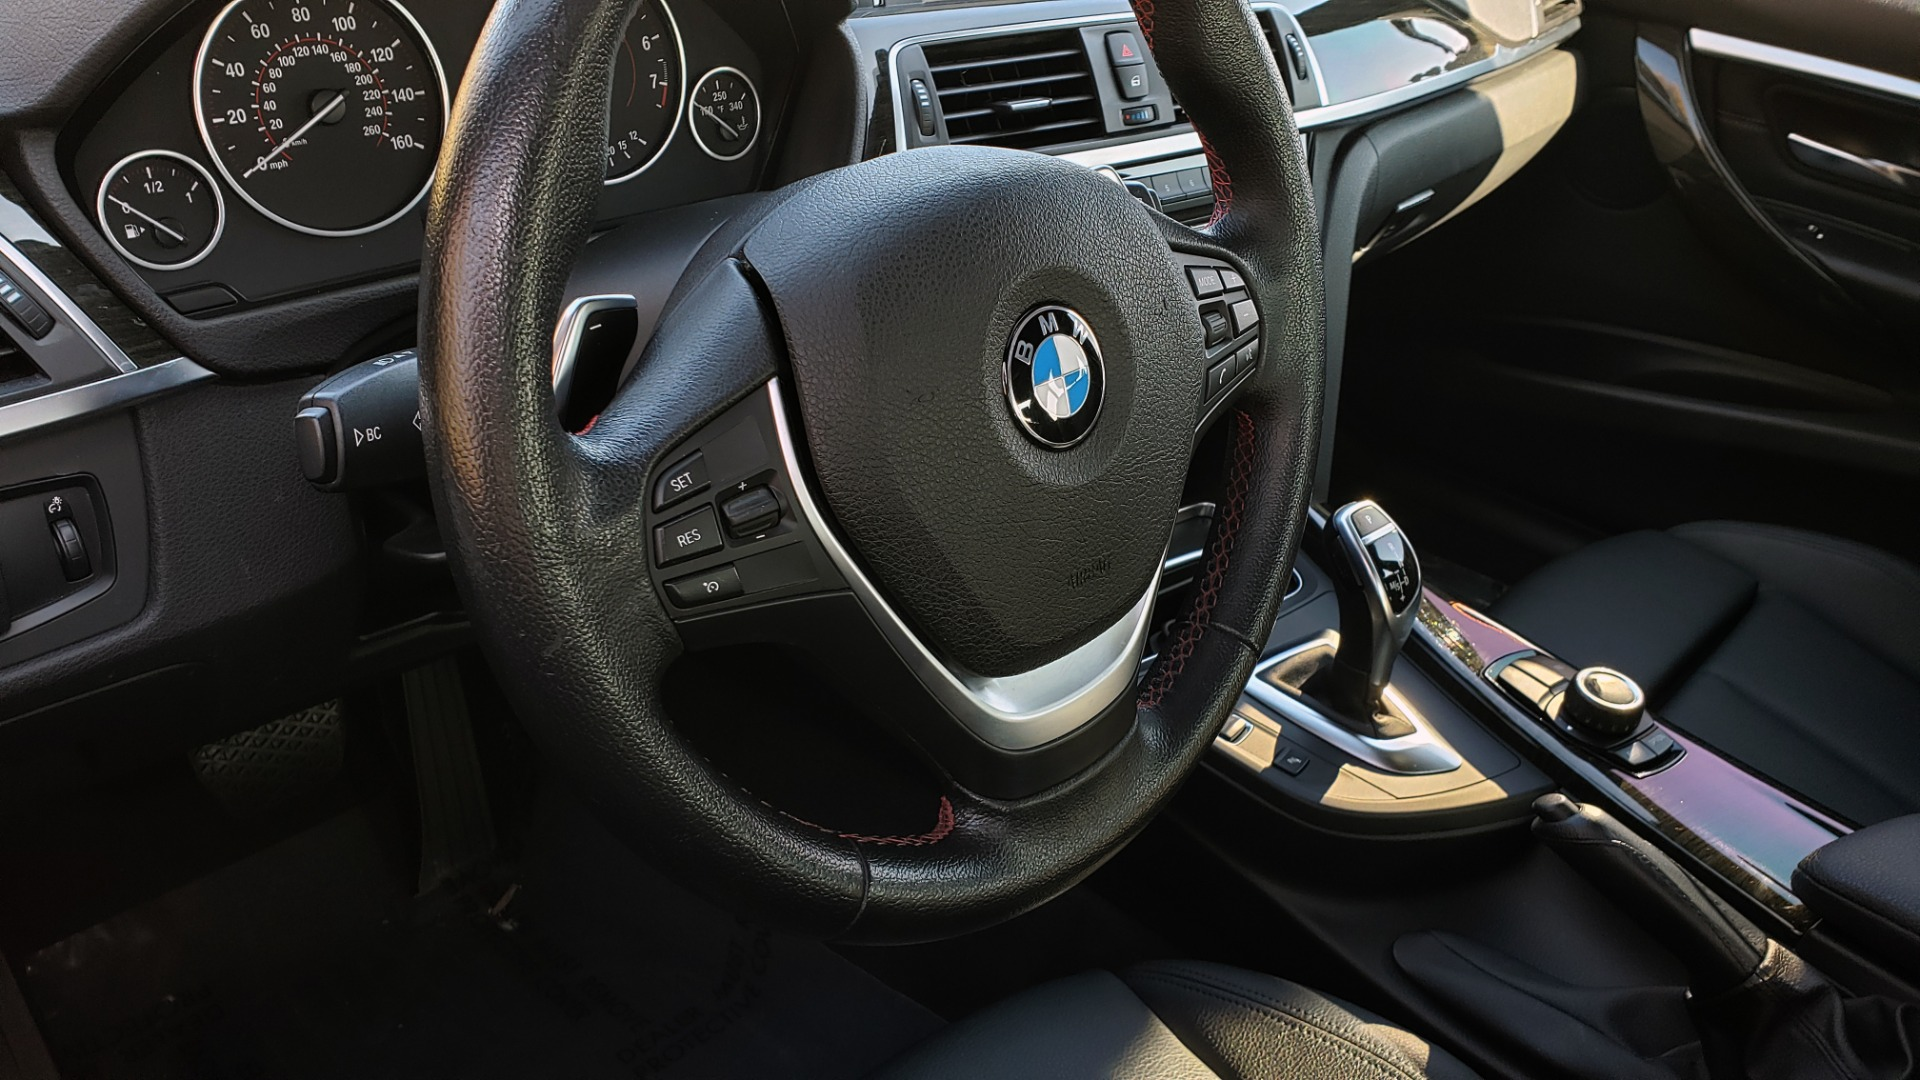 Used 2016 BMW 3 SERIES 328I / DRVR ASST / SUNROOF / PARK DIST CNTRL / REARVIEW for sale Sold at Formula Imports in Charlotte NC 28227 36